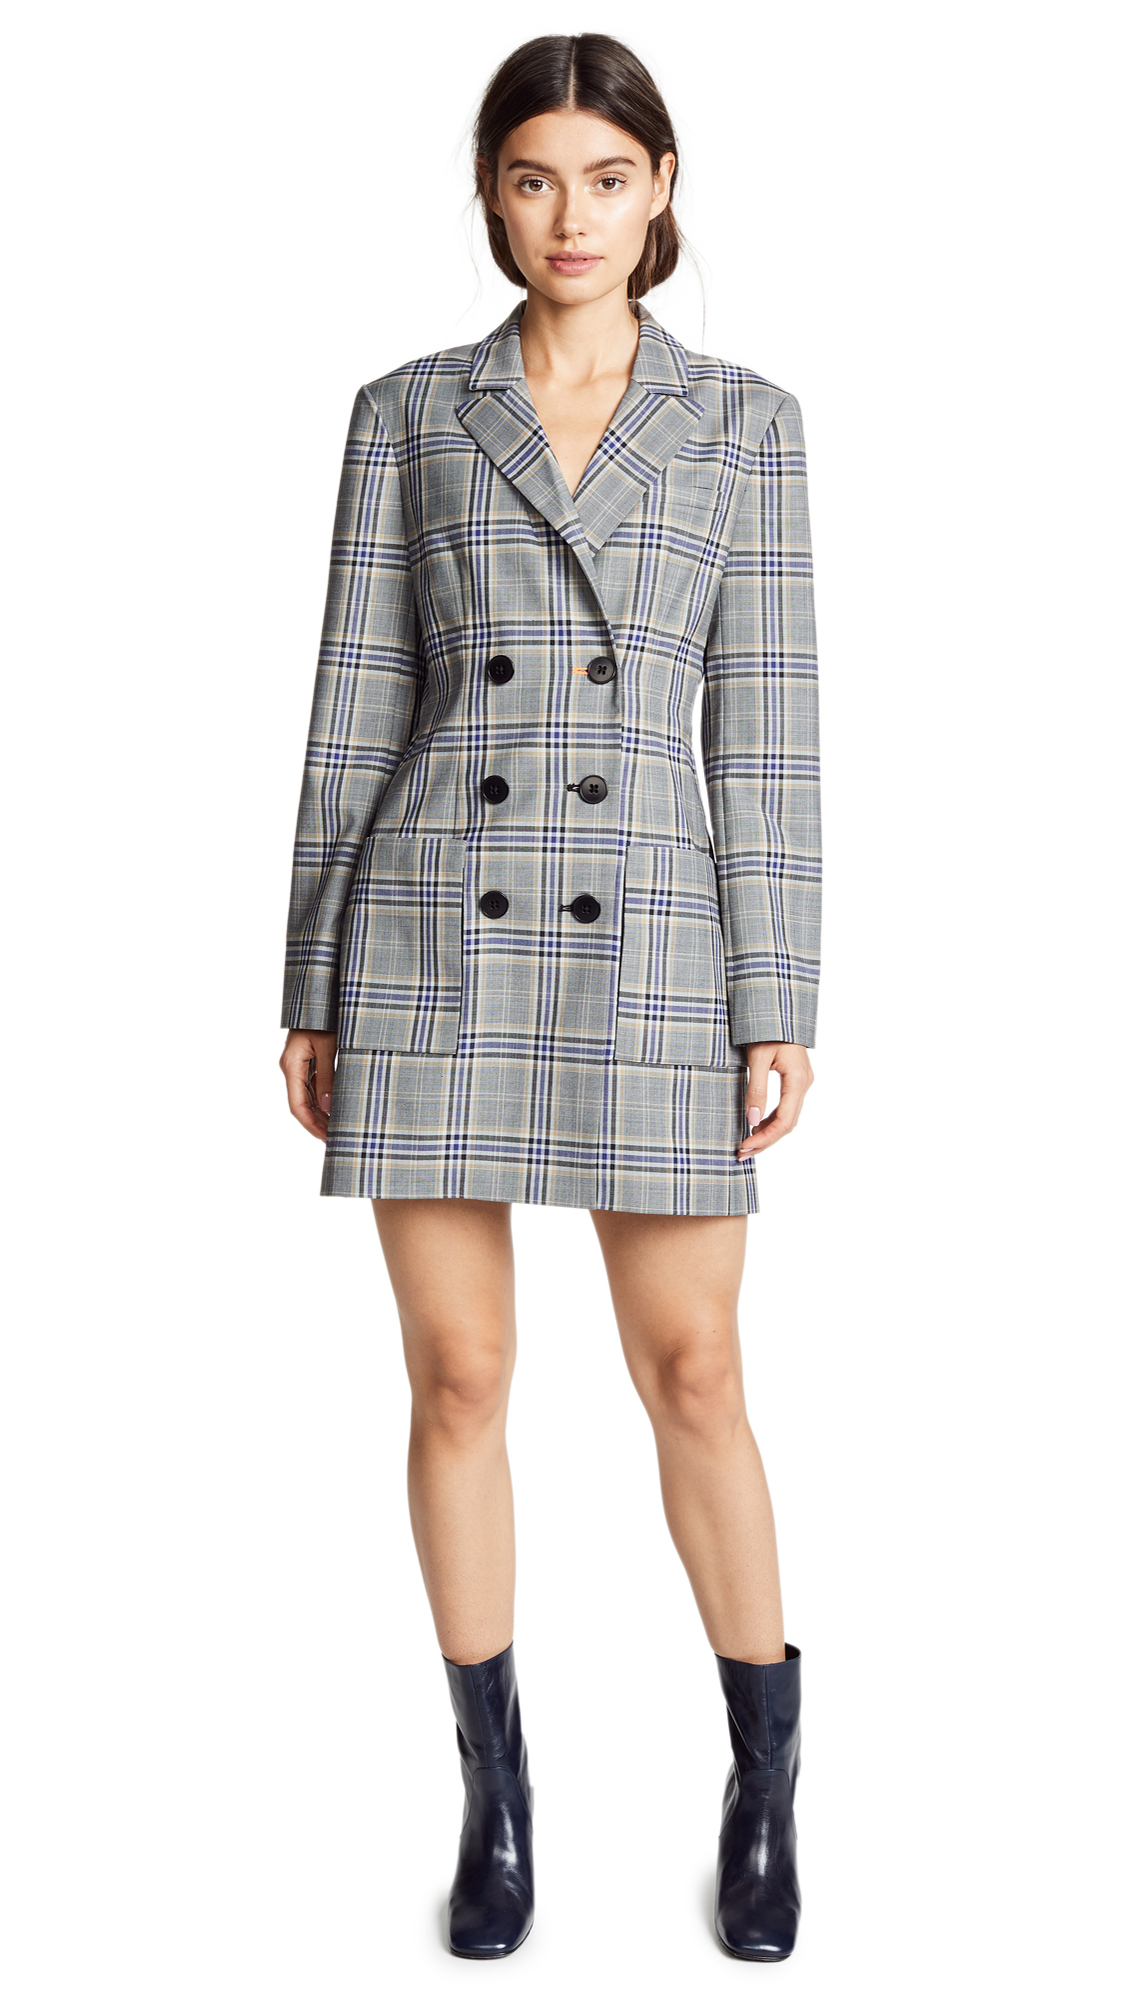 Tibi Lucas Double Breasted Blazer Dress In Black Multi